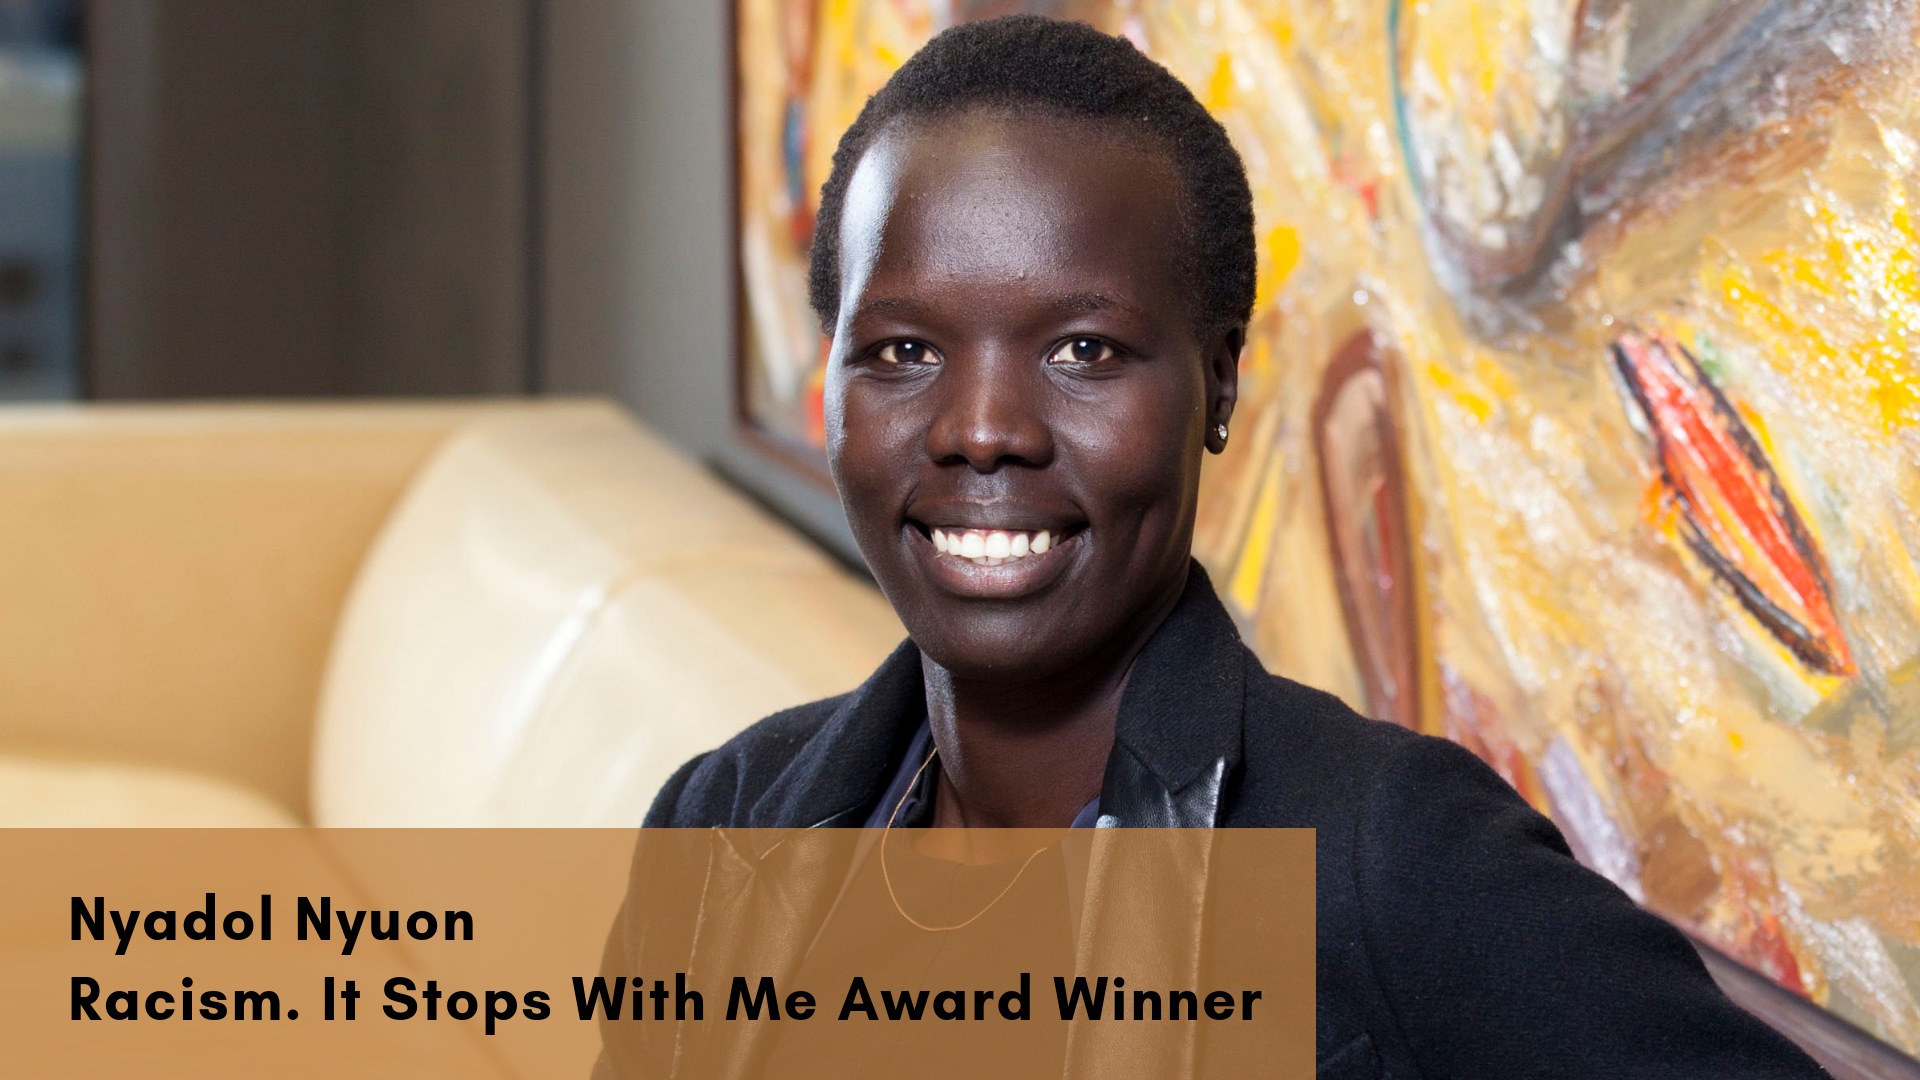 Nyadol Nyuon - Winner of the 2018 Racism. It Stops With Me Award